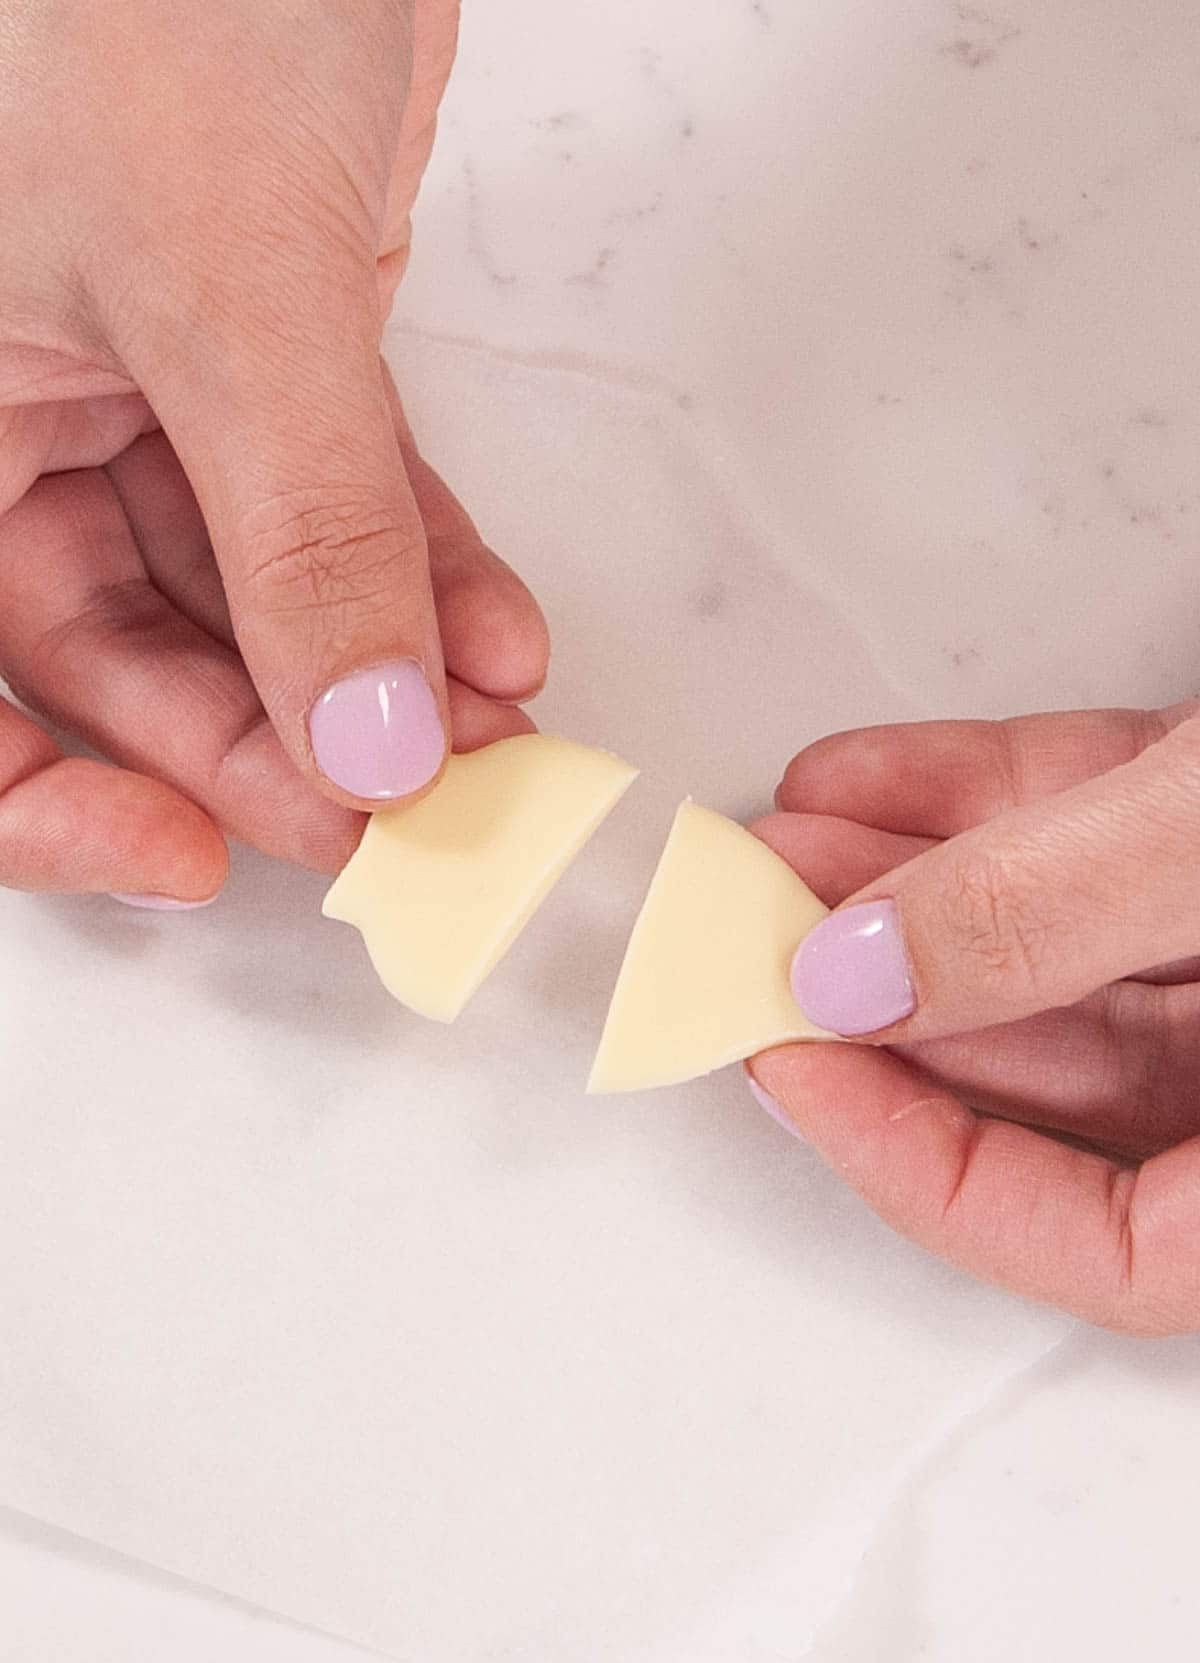 two hands holding two pieces of white chocolate